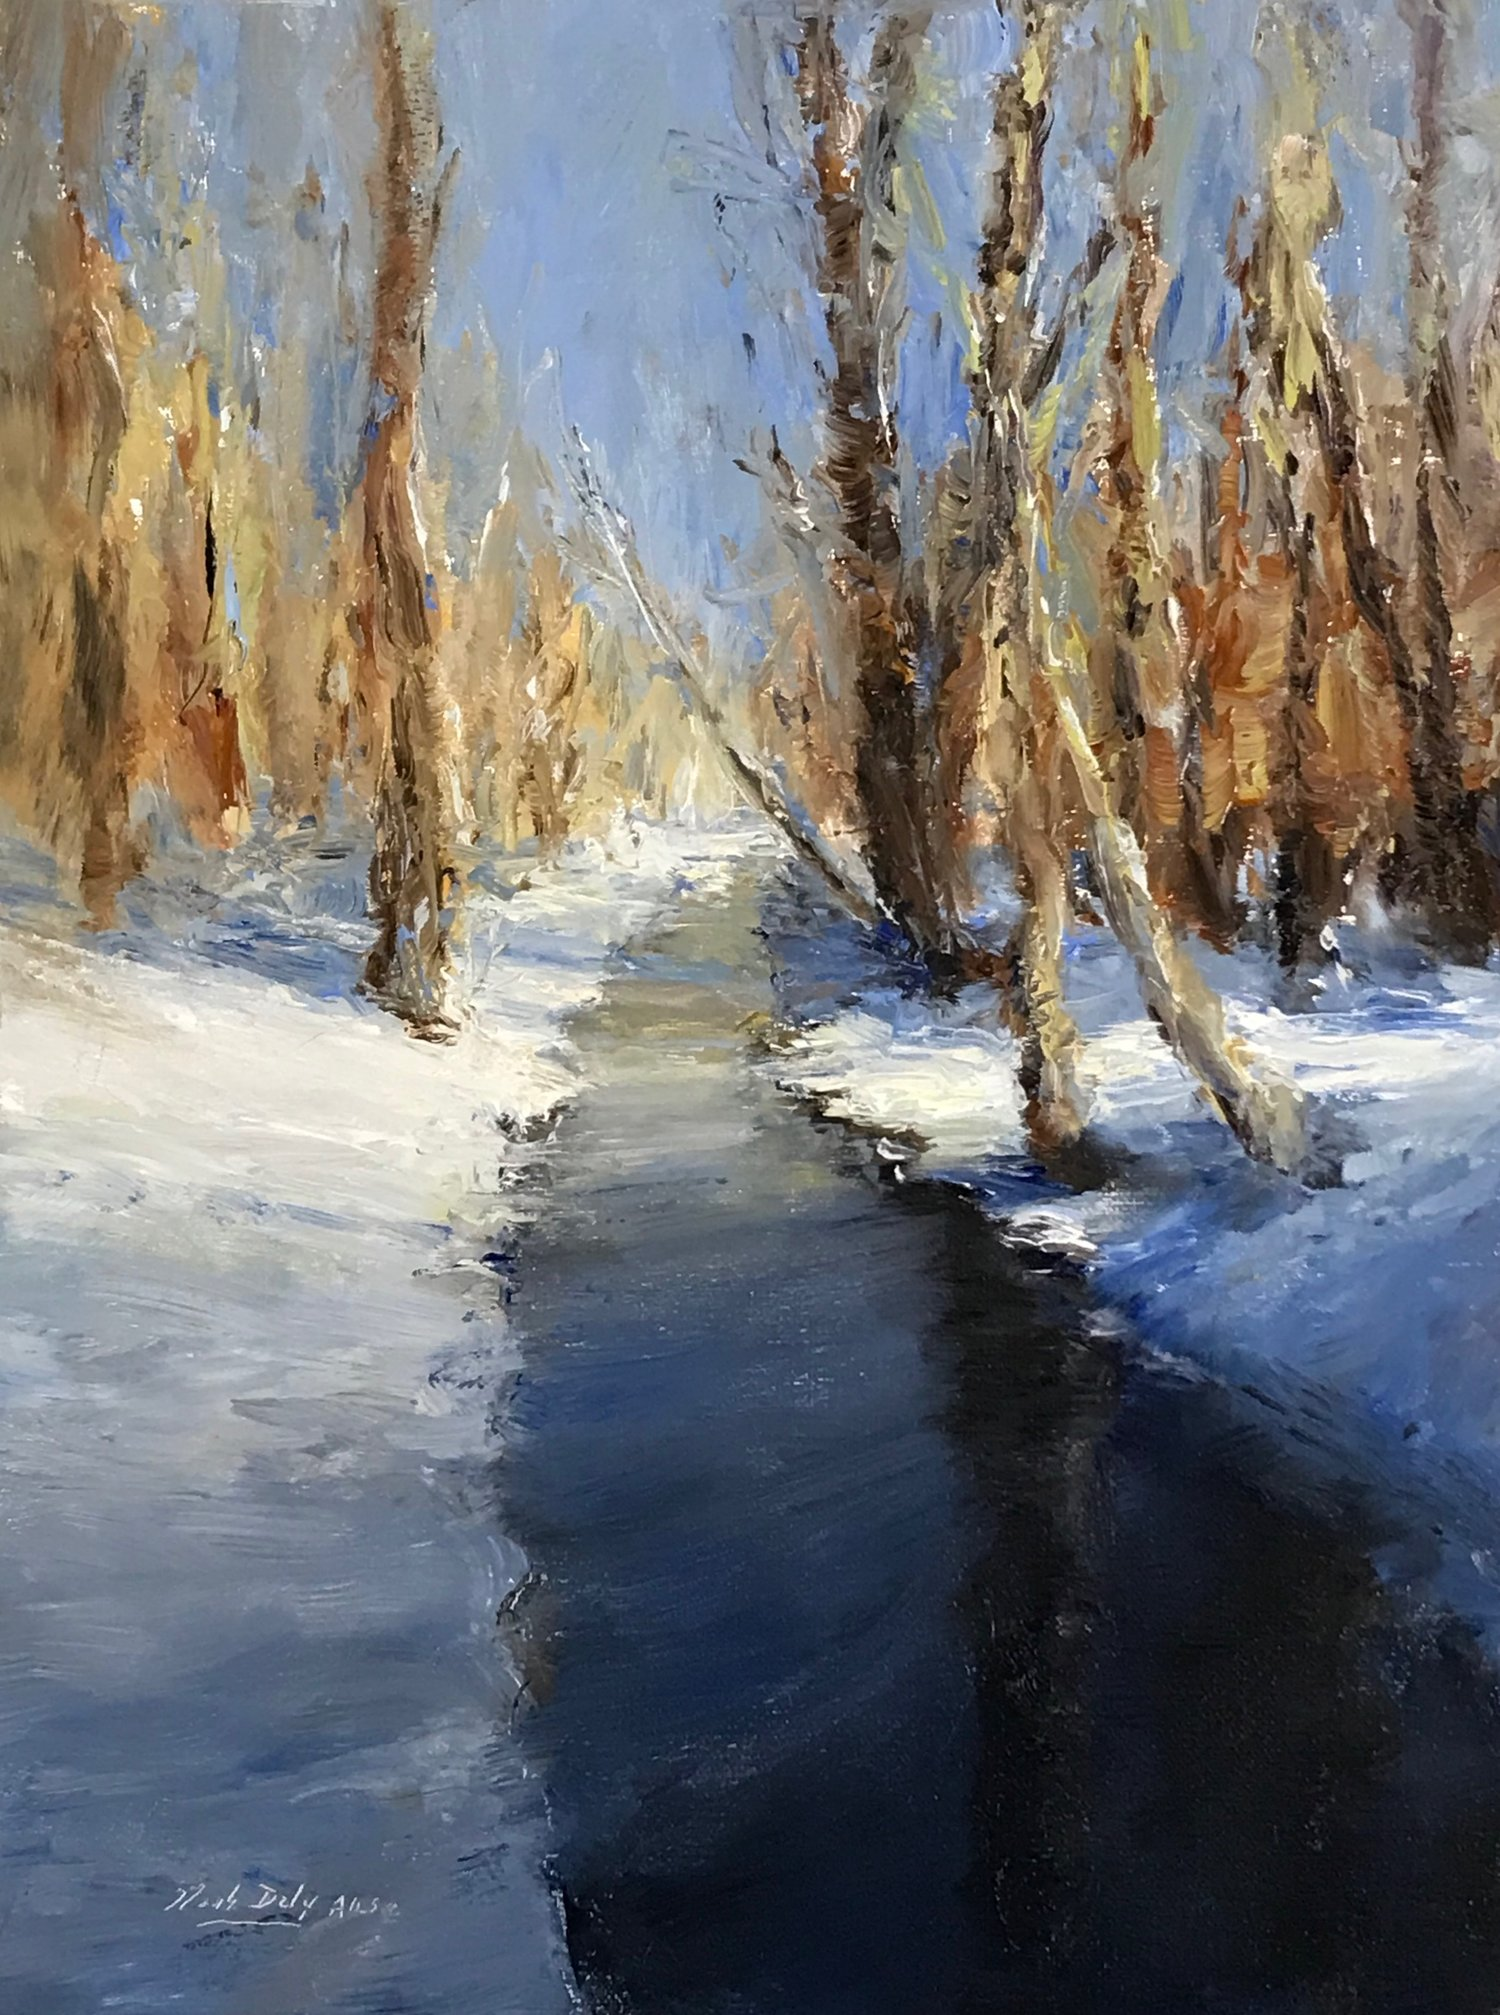 Snowy Shadows, oil, 12 x 9. Signed lower left by Mark Daly